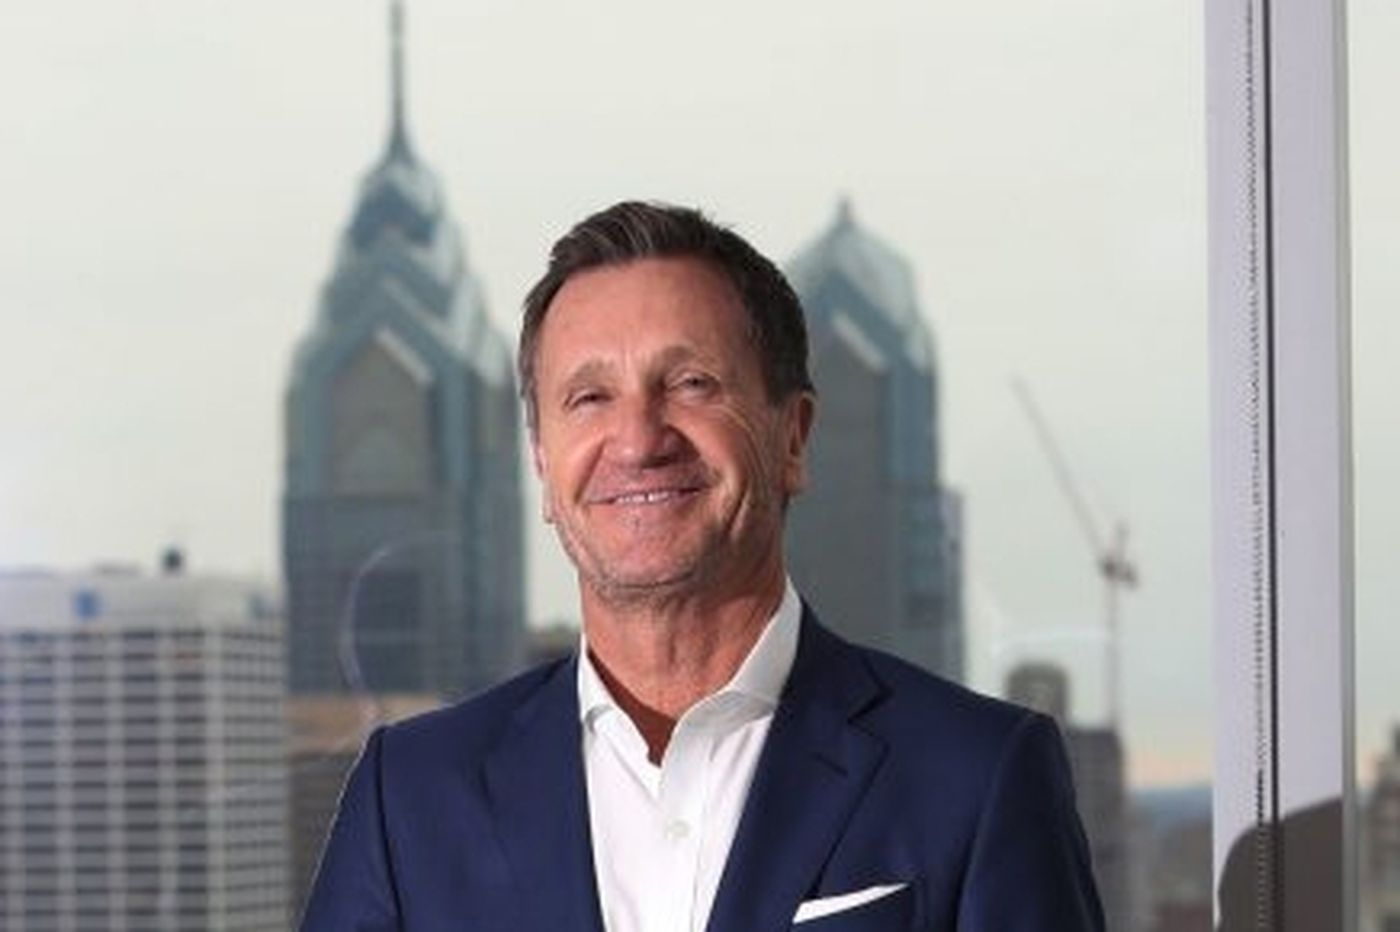 Pierre Brondeau, who put FMC on the world map and the Philly skyline, is moving on